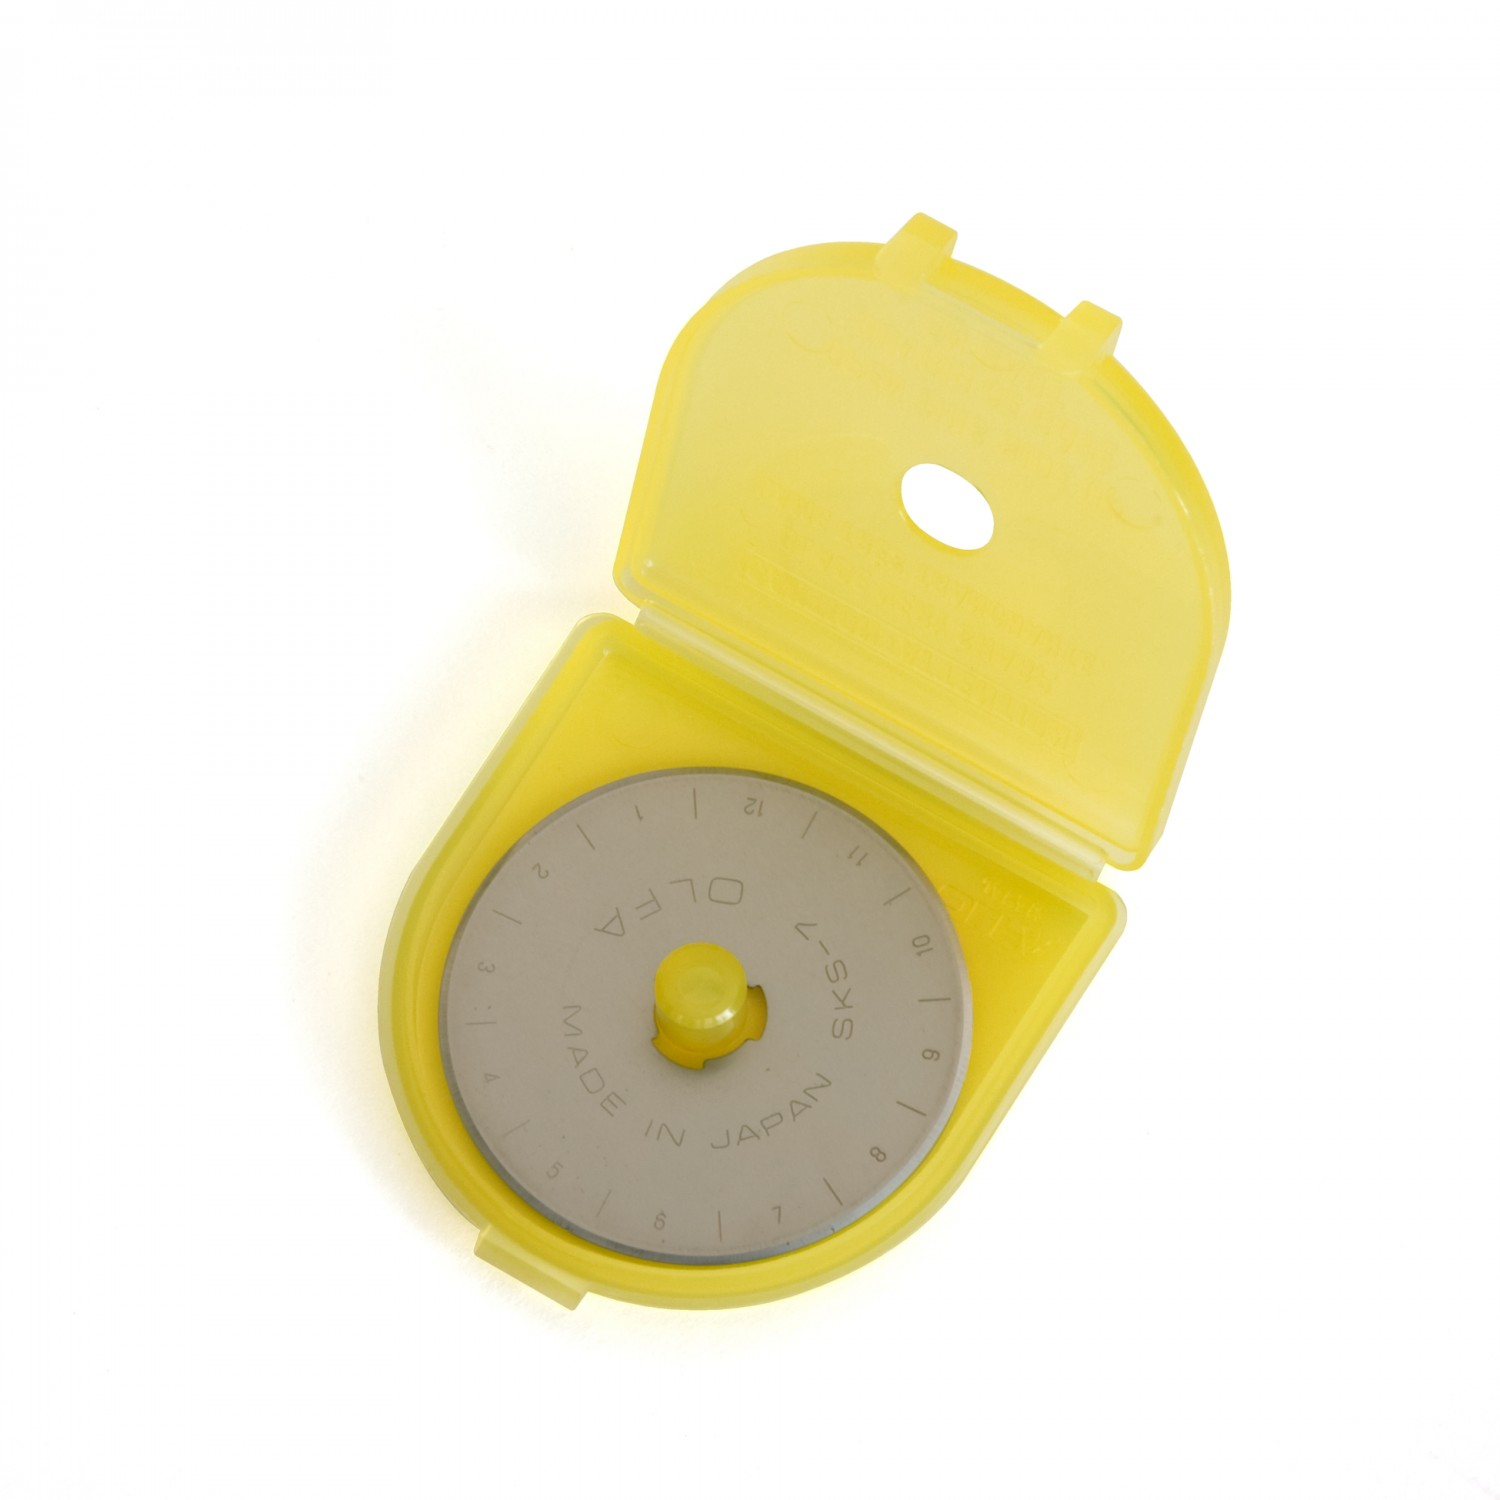 Olfa RB45-1 Rotary Blade 45mm, 1/pk Case